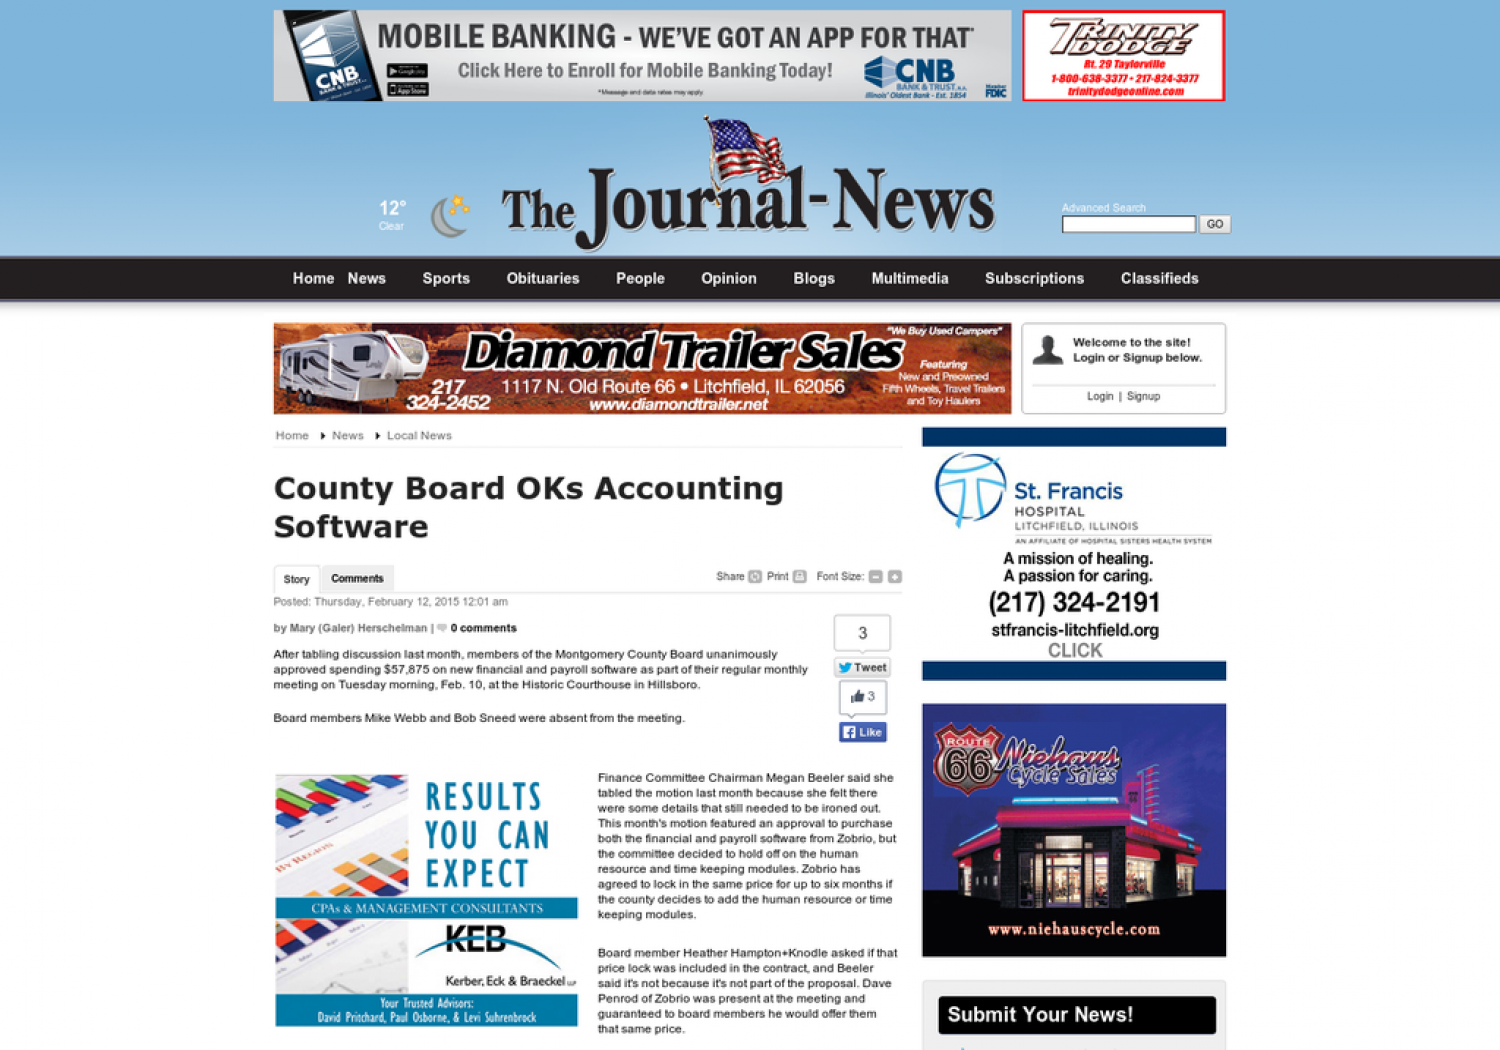 Cheyney Group Accounting Software Review: County Board OKs